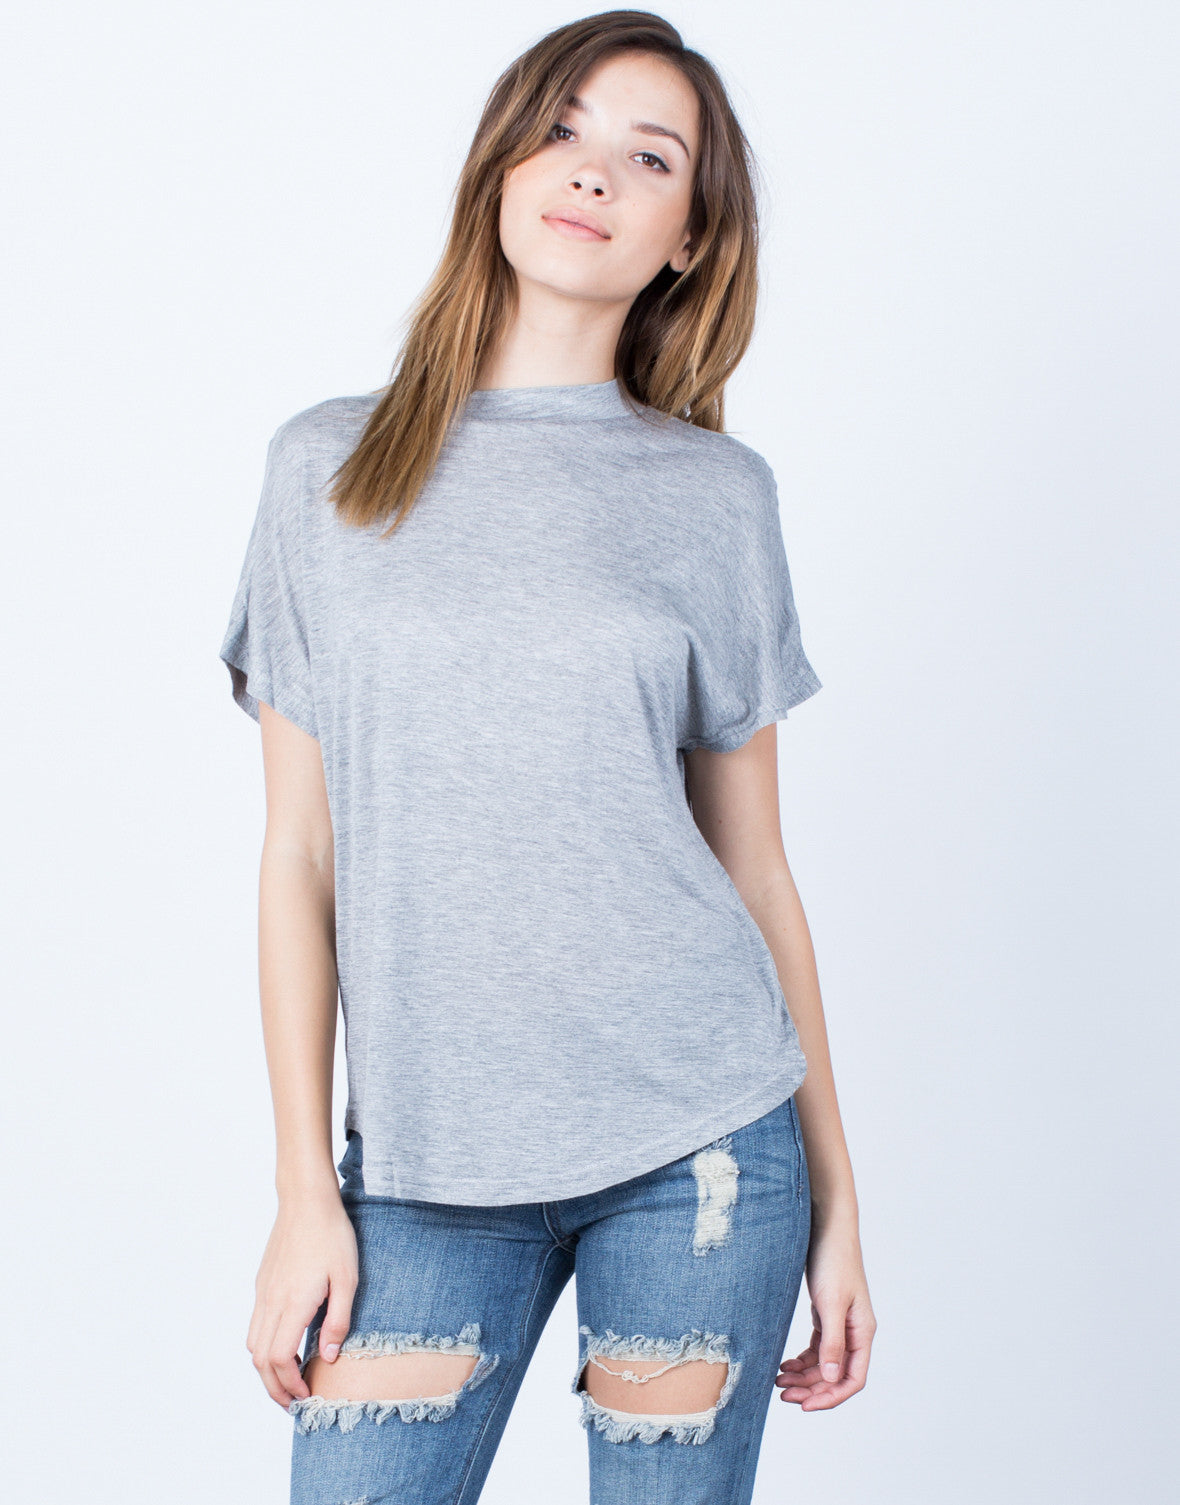 Front View of Mock Neck Tee